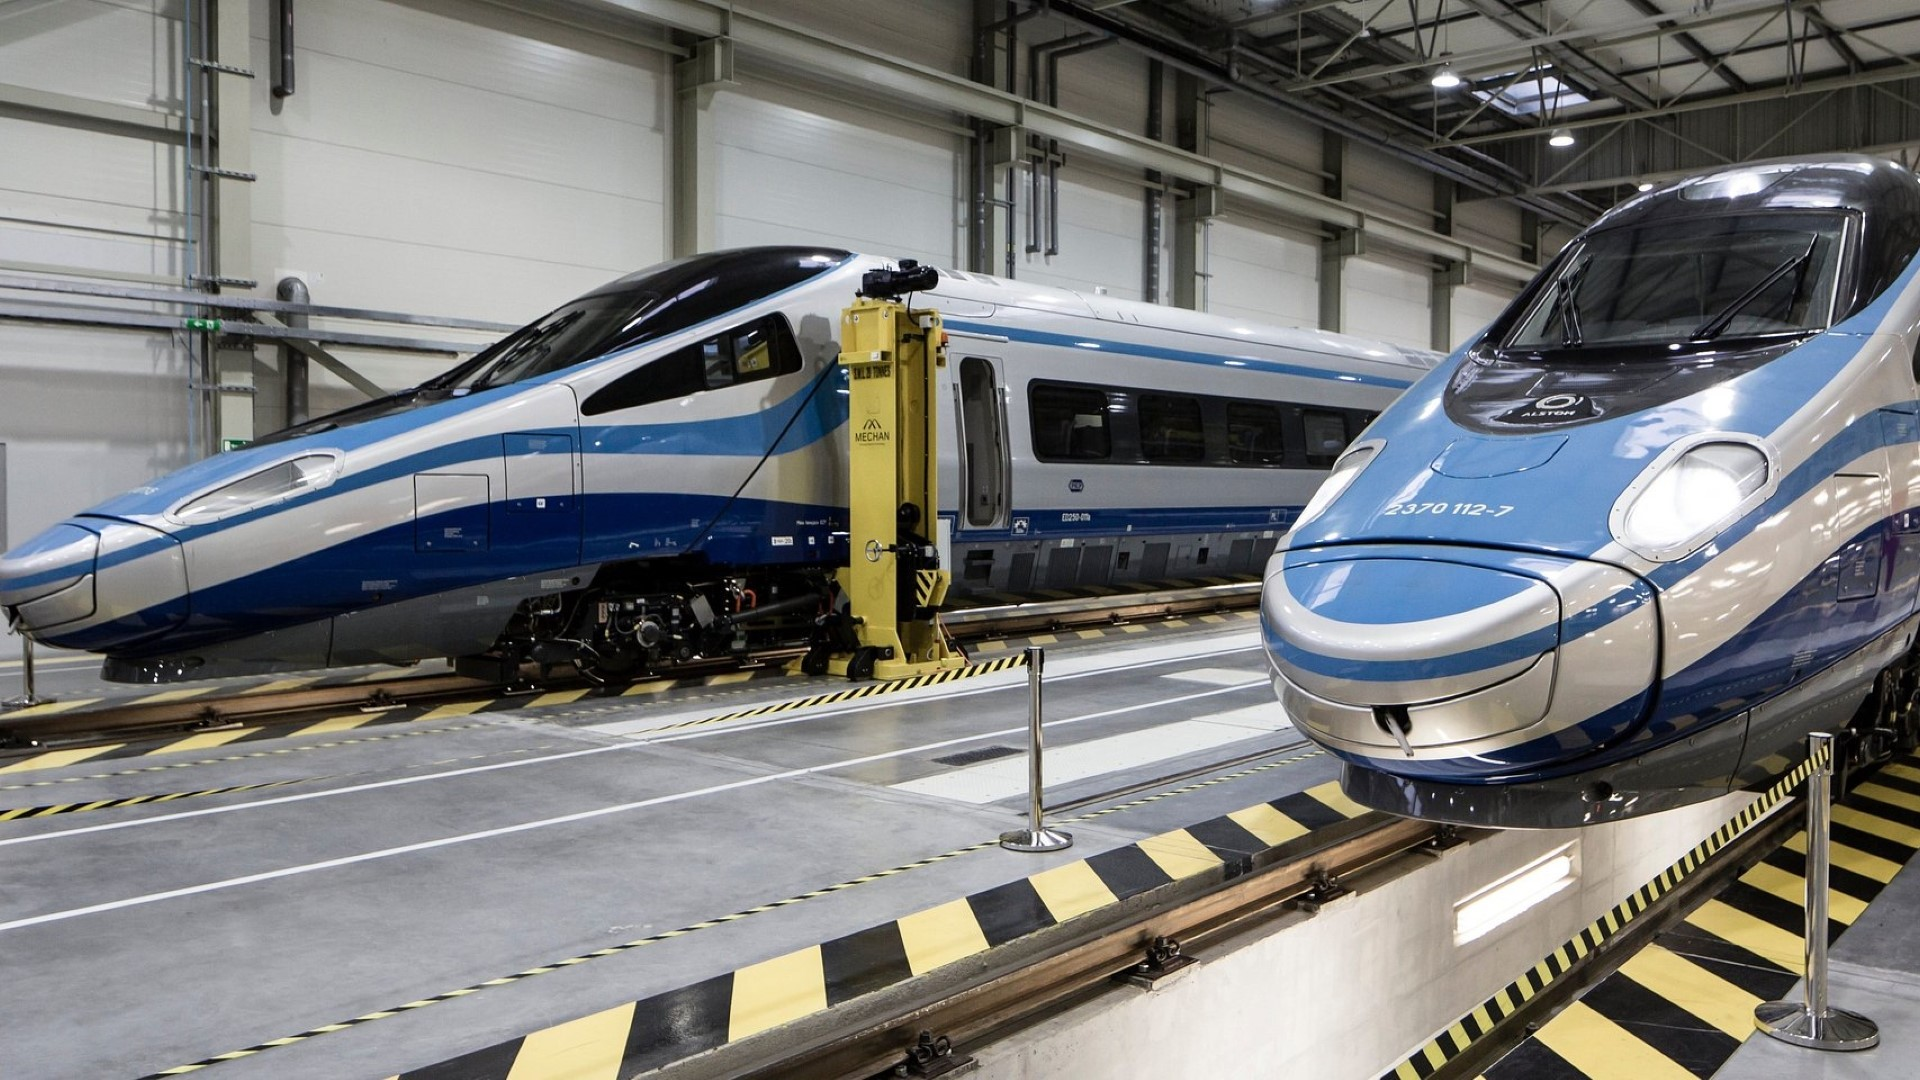 Alstom introduced the Pendolino high-speed train to Poland in 2014. There are currently 20 Pendolinos in operation in the country.